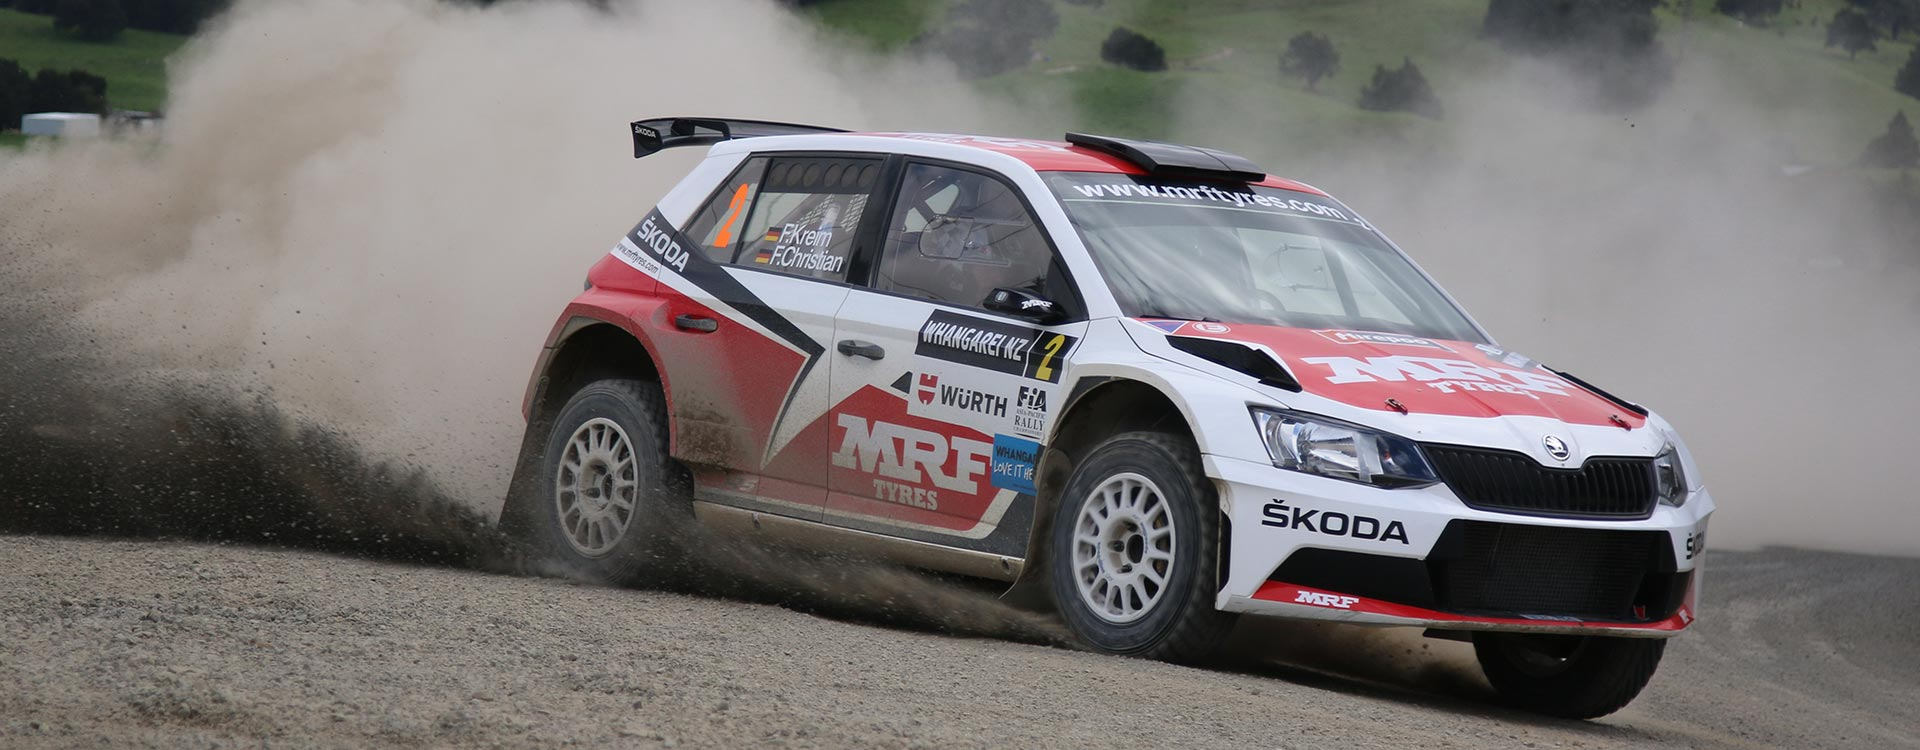 PHOTO: ŠKODA MRF team at the Rally of Whangarei